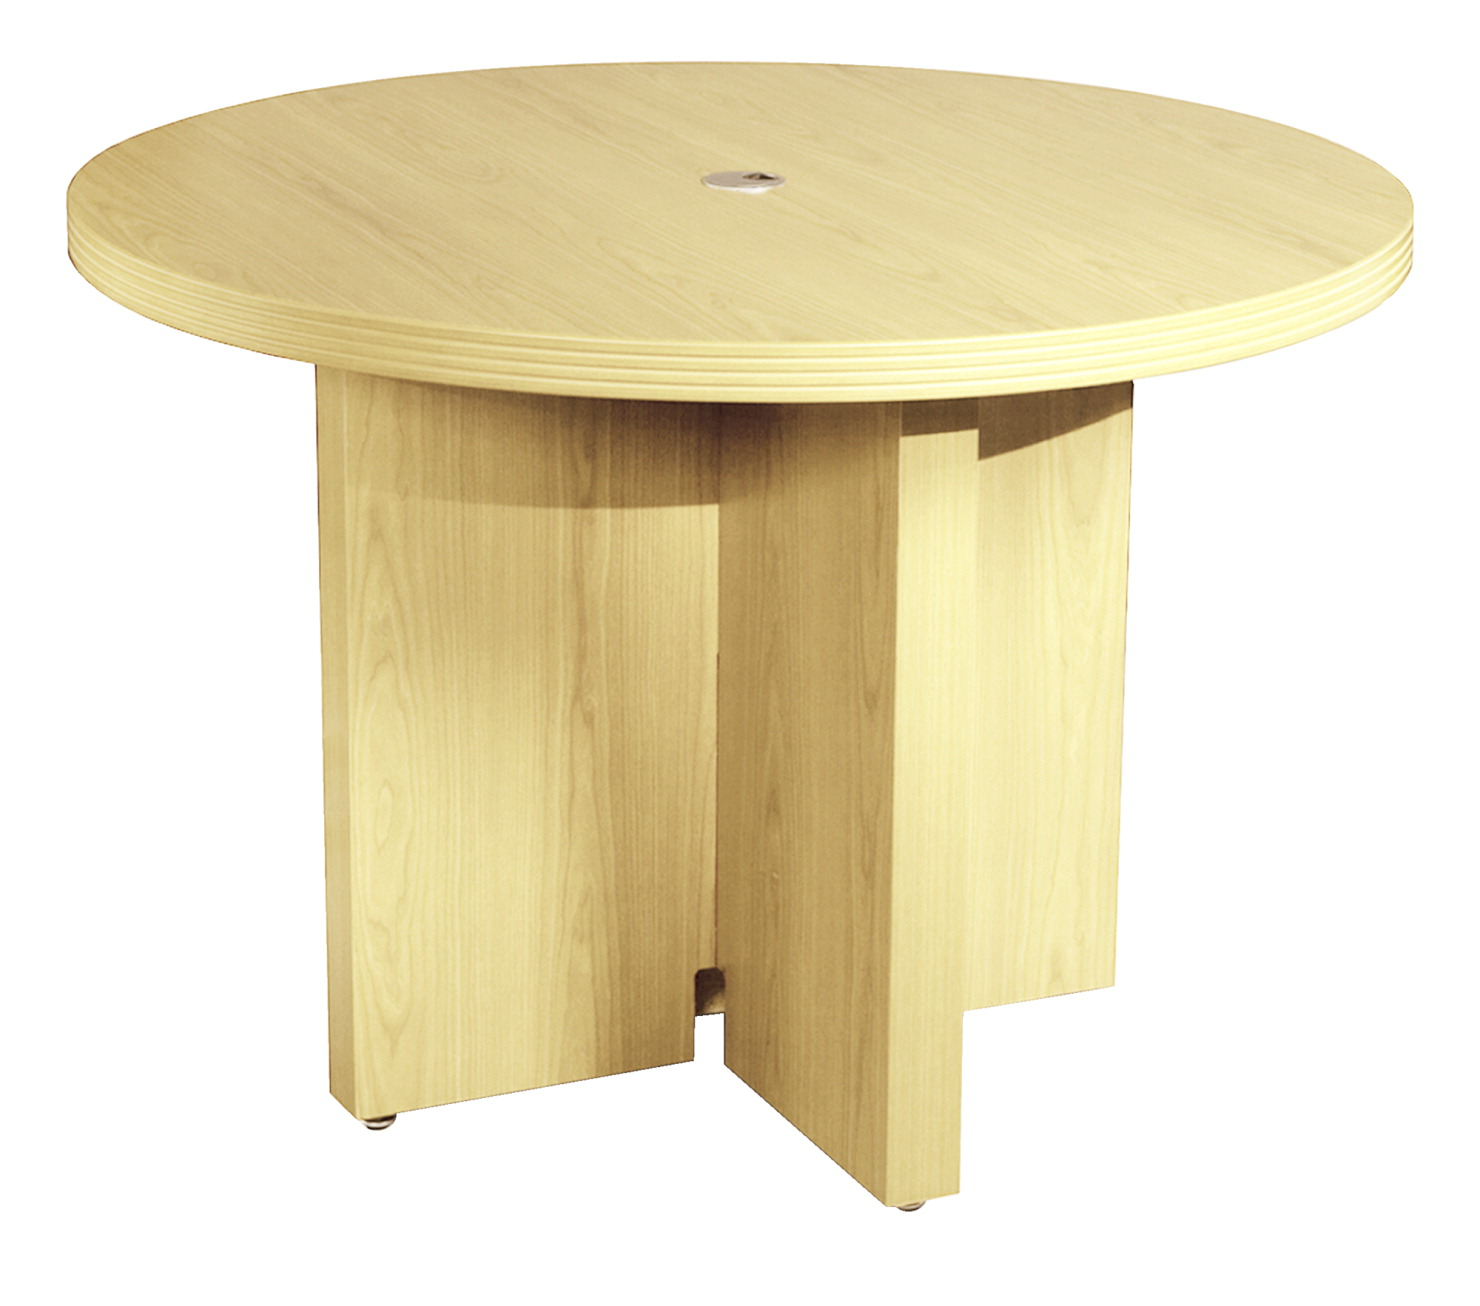 Mayline Round Conference Table SCHOOL SPECIALTY CANADA - 42 inch round conference table